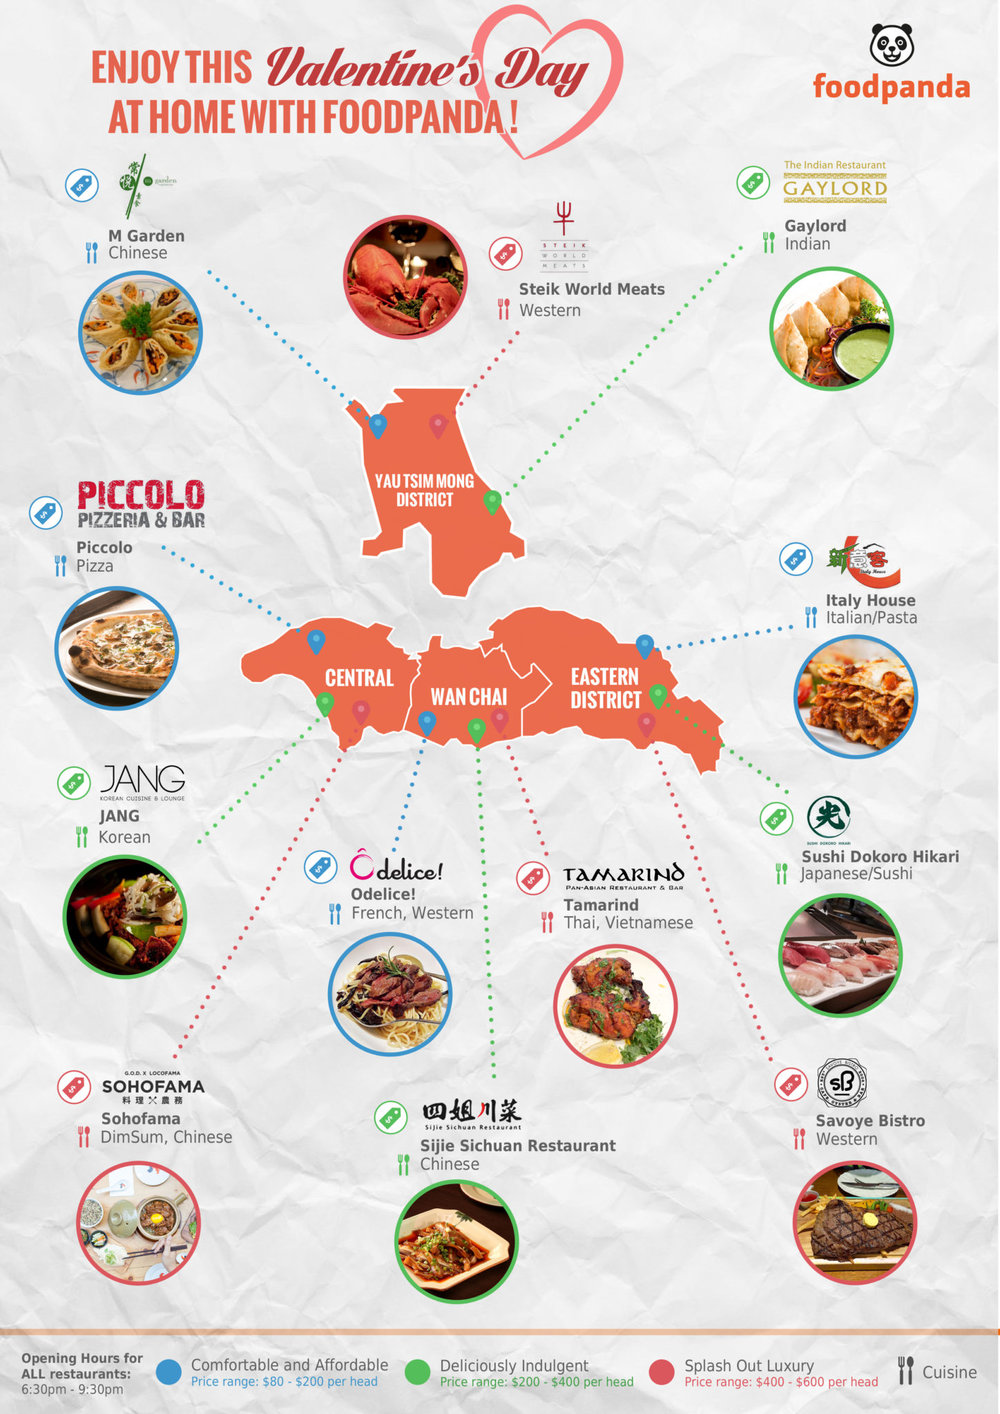 Enjoy-Valentines-Day-at-home-with-foodpanda_Infographic.jpg